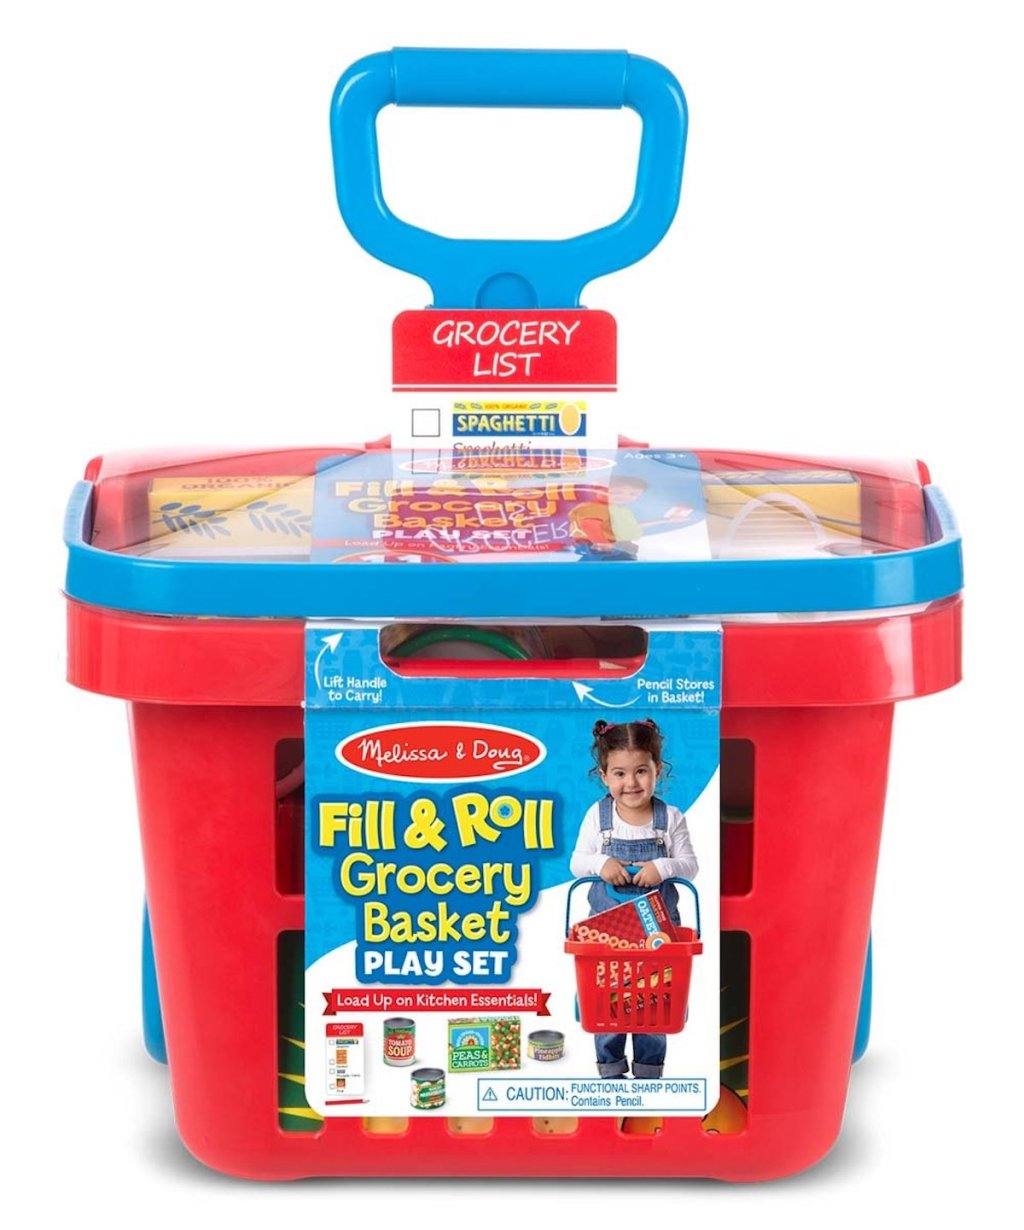 red grocery basket of Melissa & Doug Rolling Grocery Basket Toy Set